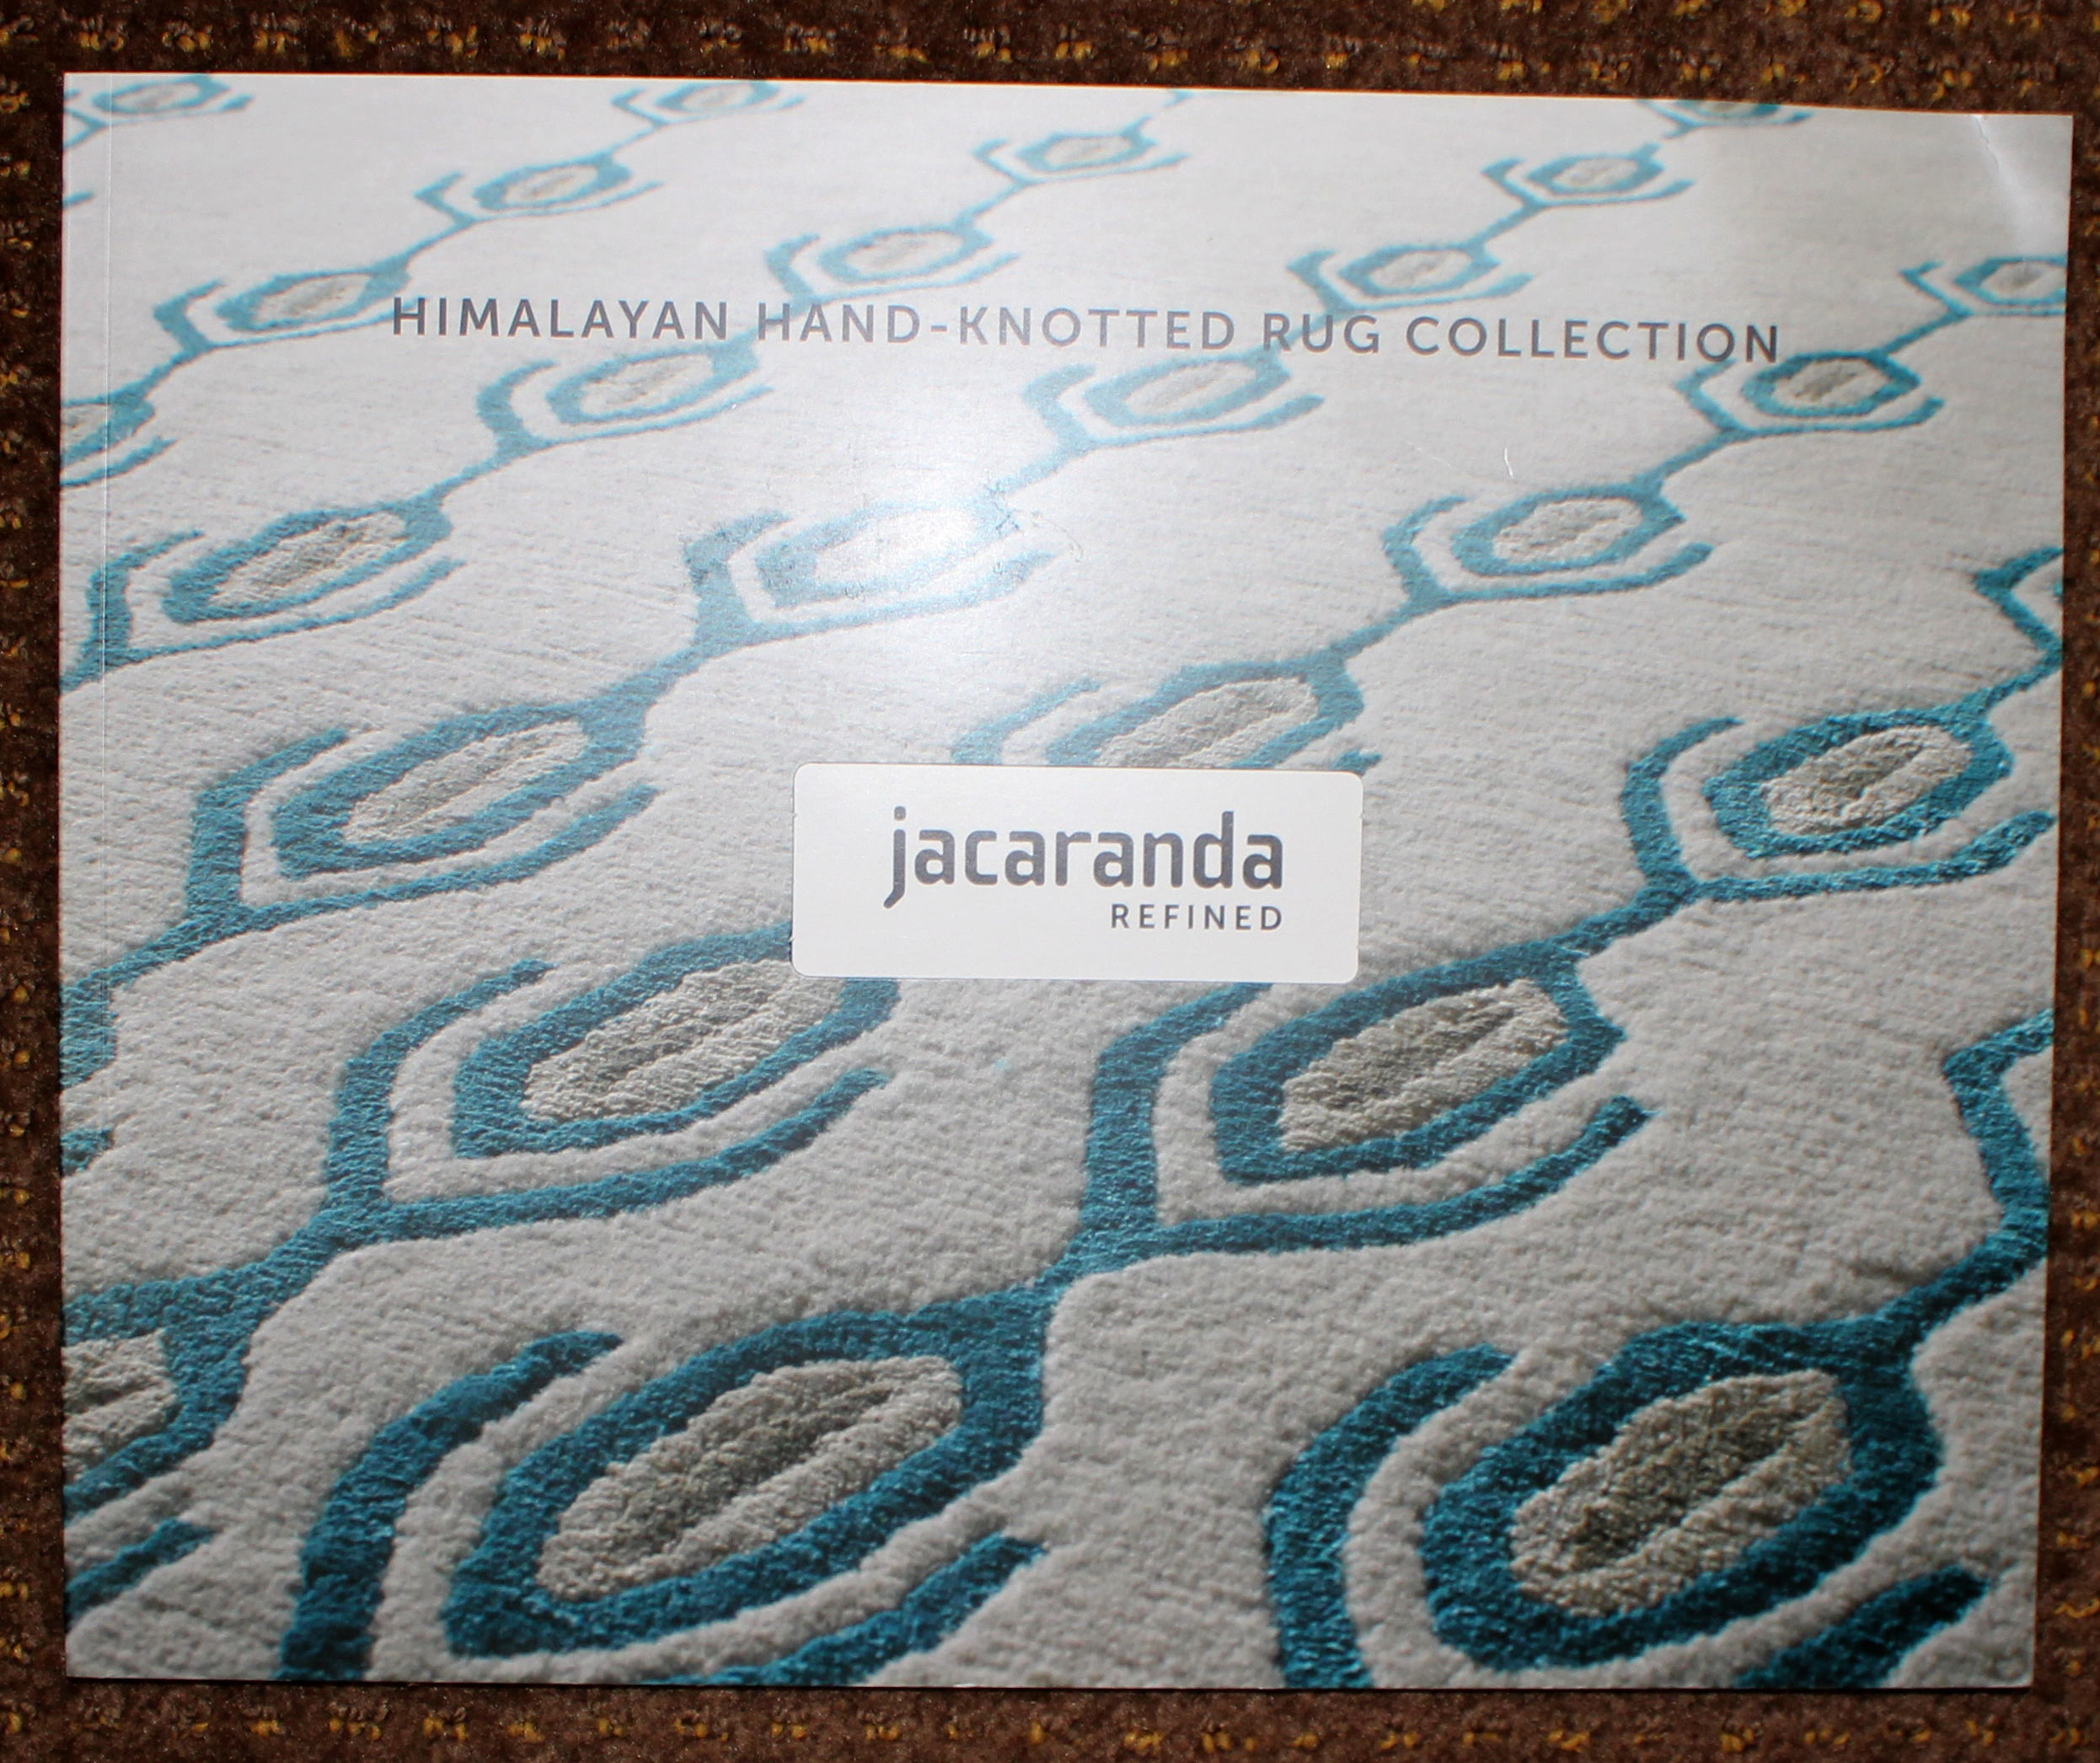 брошюра himalayan hand-knotted rugs